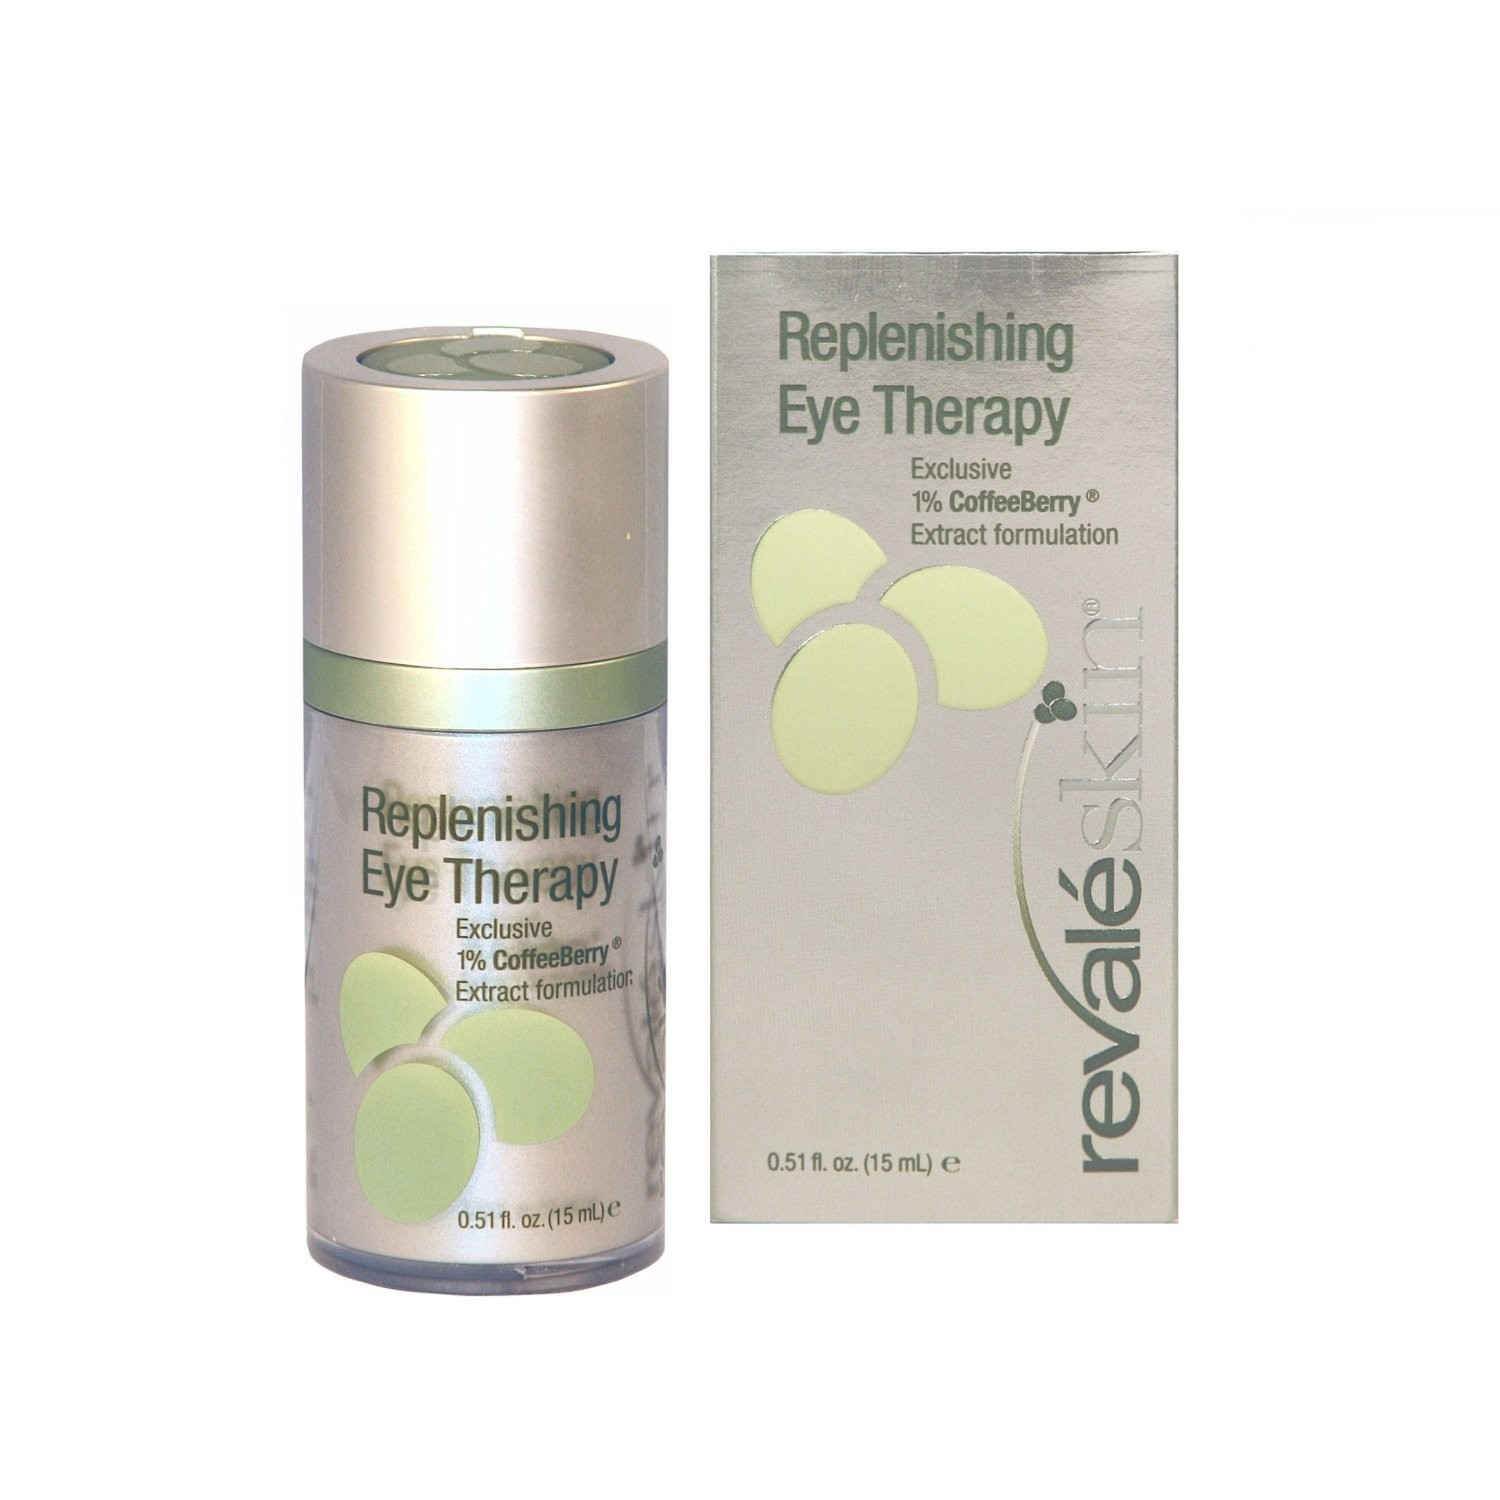 Revaleskin 1% Coffeeberry Extract Formulation Replenishing Eye Therapy, .51-Ounce Pump